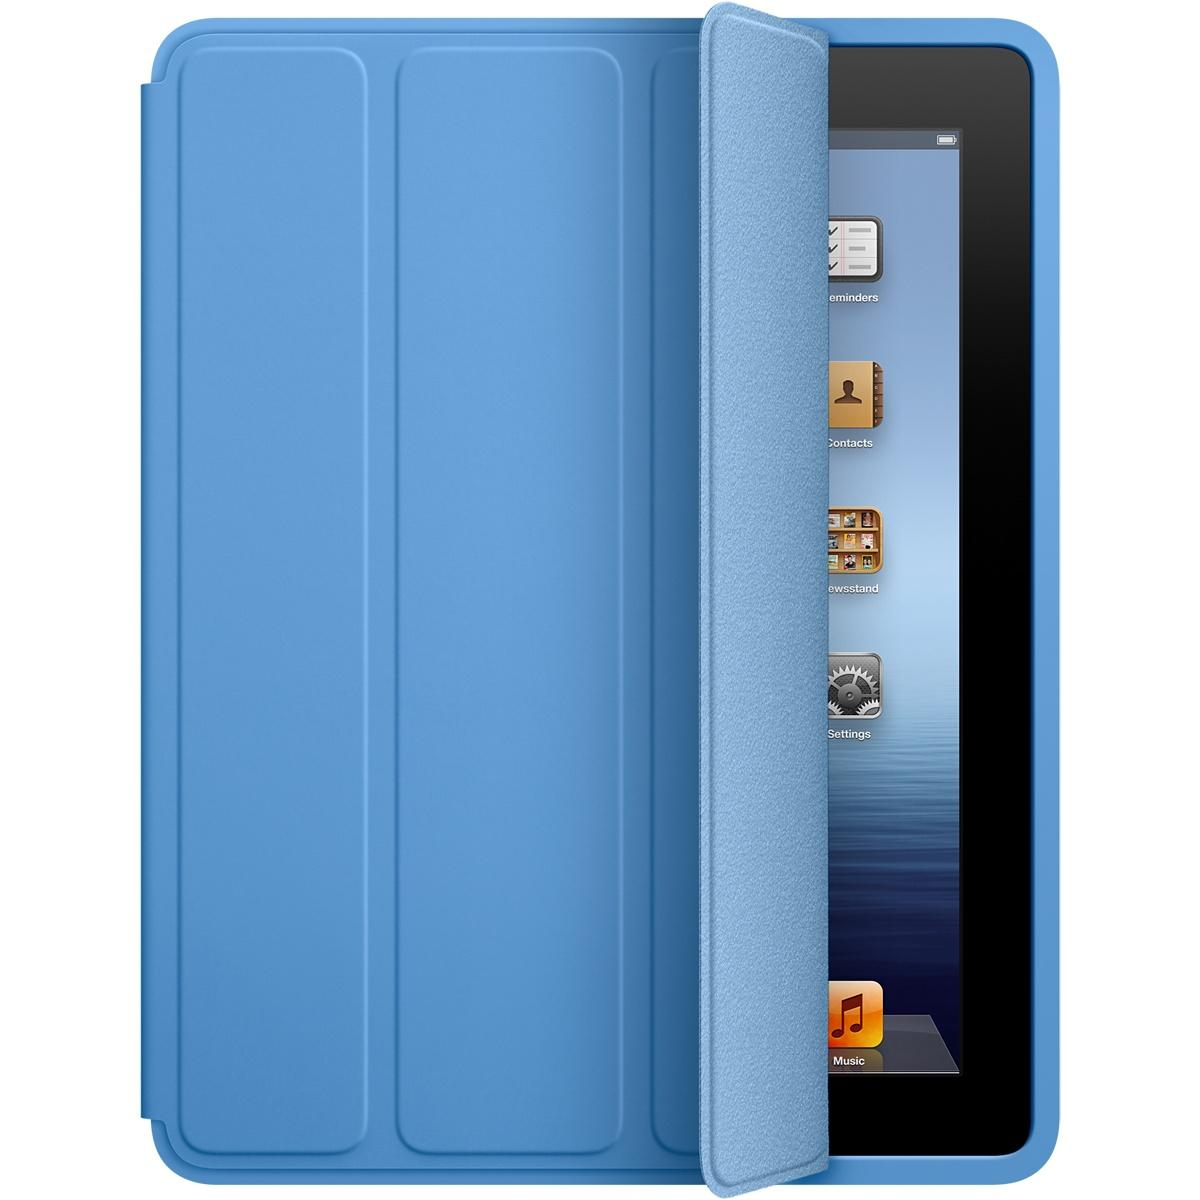 Apple iPad Air Smart Cover - Blue Mf054zm,A